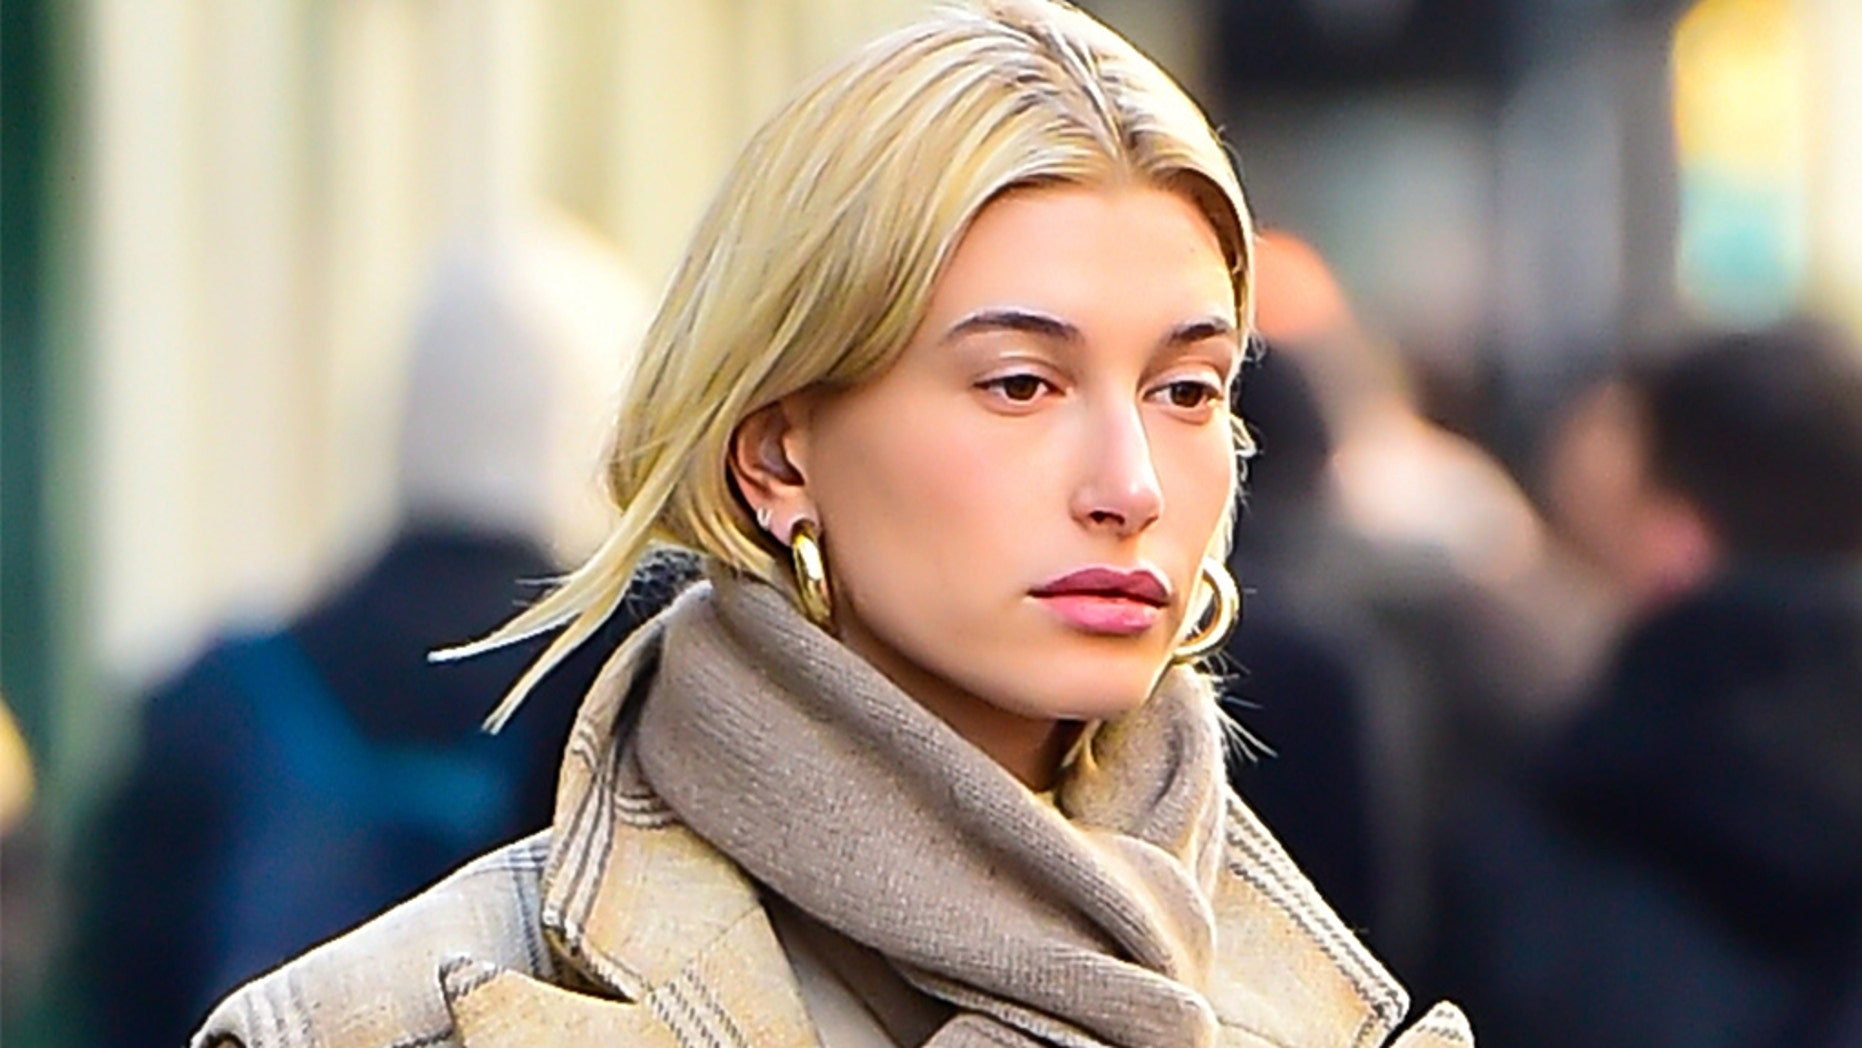 Justin Bieber's spouse Hailey Baldwin flaunts attractive legs in cheeky bottomless get-up